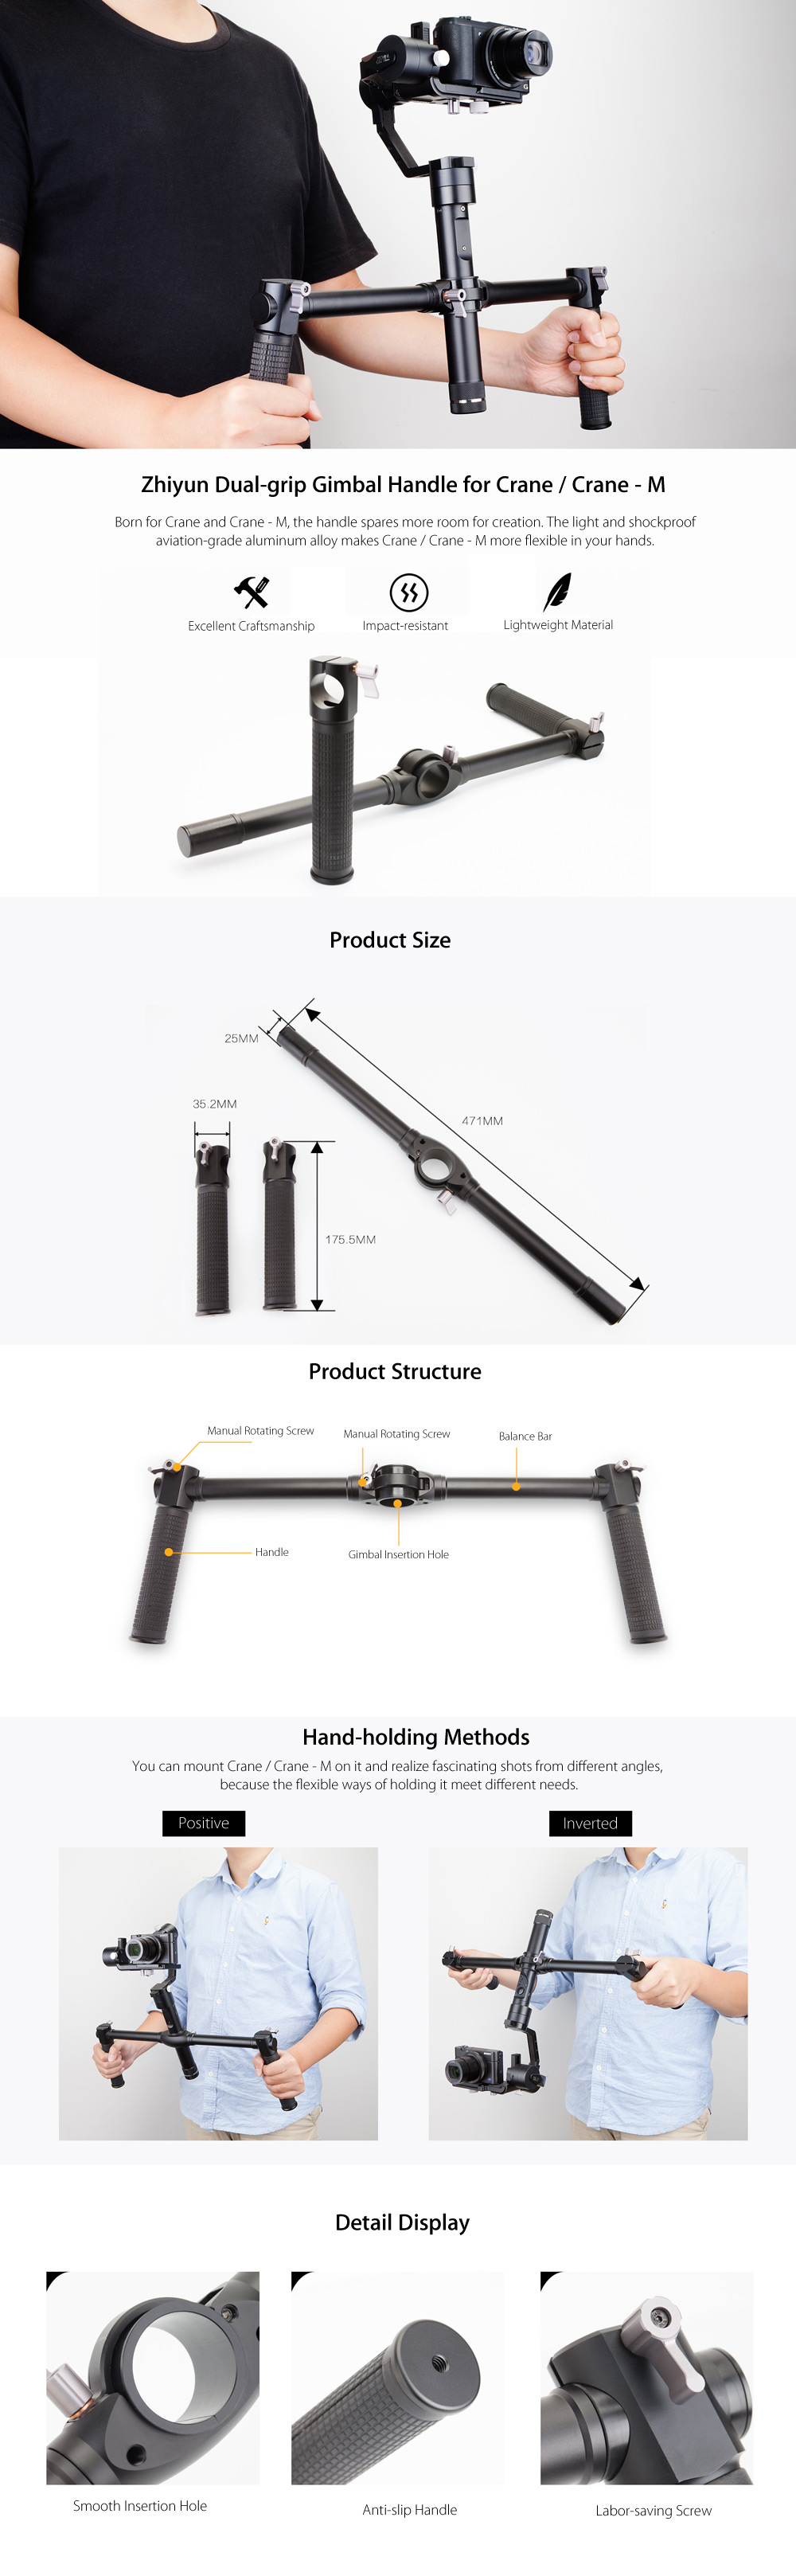 Original Zhiyun Dual-grip Handle for Crane / Crane - M 3-axis Stabilization Gimbal